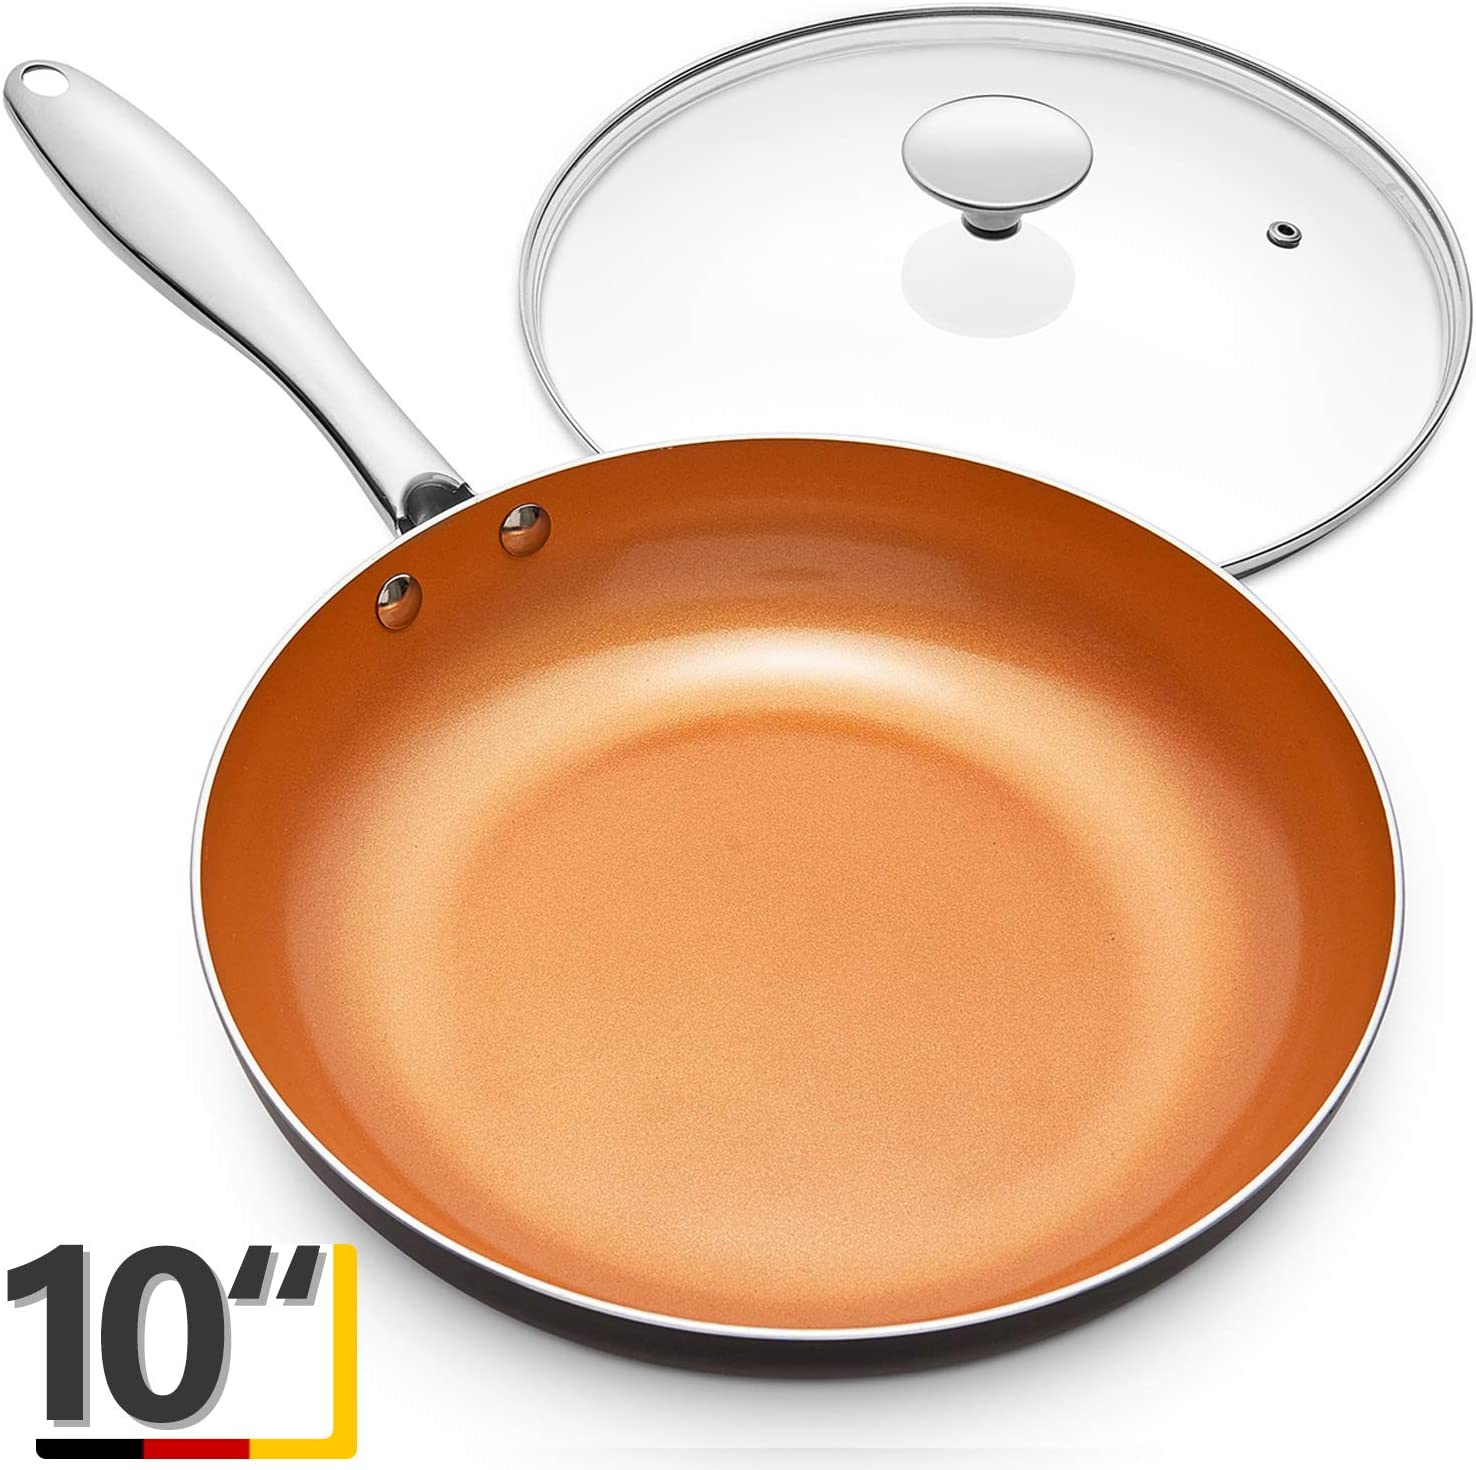 MICHELANGELO 10 Inch Frying Pan with Lid